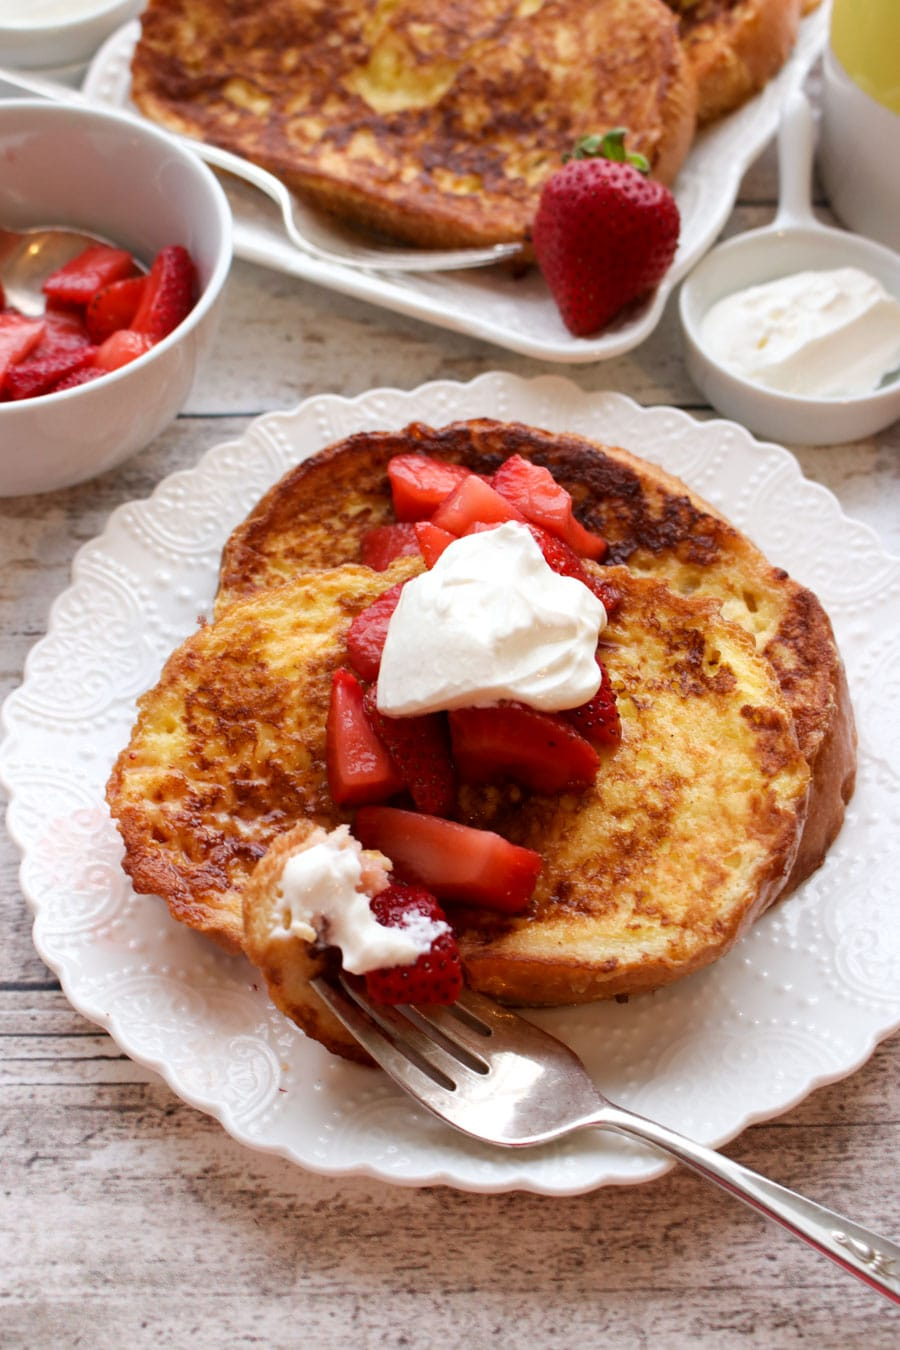 Slice of french toast on a plate with strawberries and cream